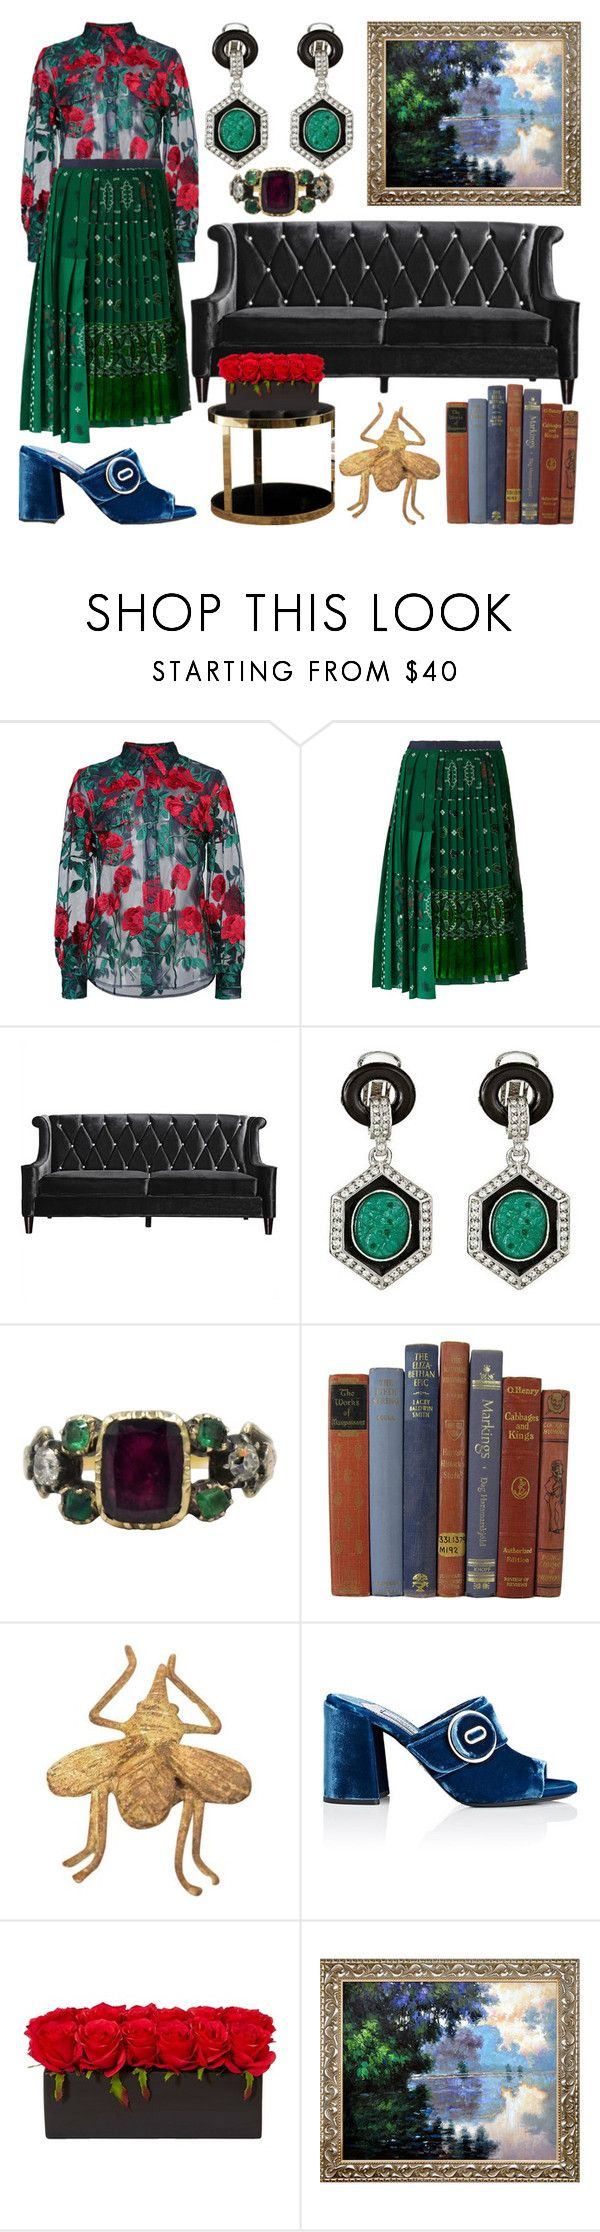 """Do I Look Like I'm Made of Monet?"" by heybigtrender on Polyvore featuring Adam Selman, Sacai, Armen Living, Kenneth Jay Lane, Dom Edizioni and Prada"